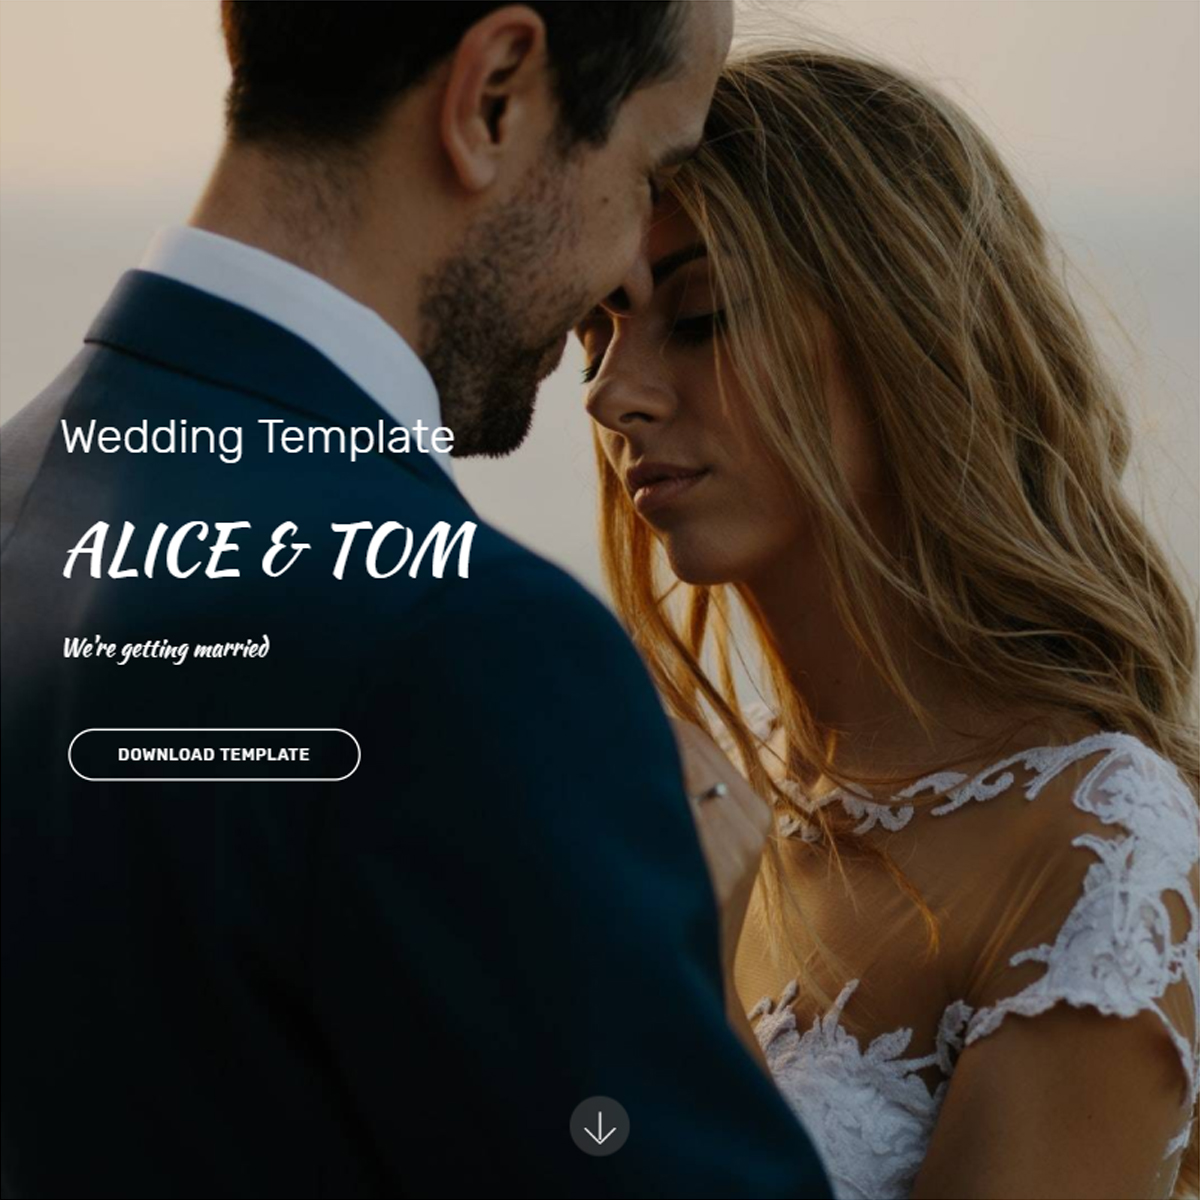 HTML Bootstrap Wedding Templates